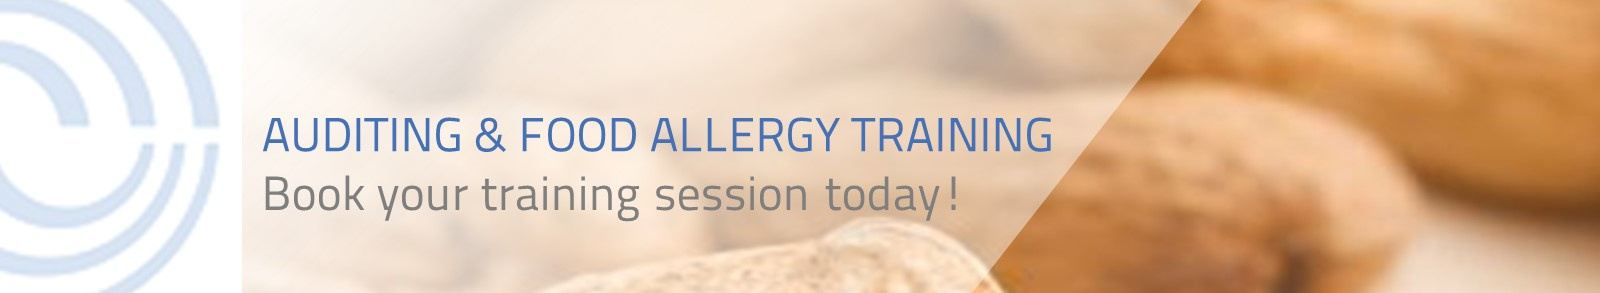 Auditing and Food Allergy Training Requirement